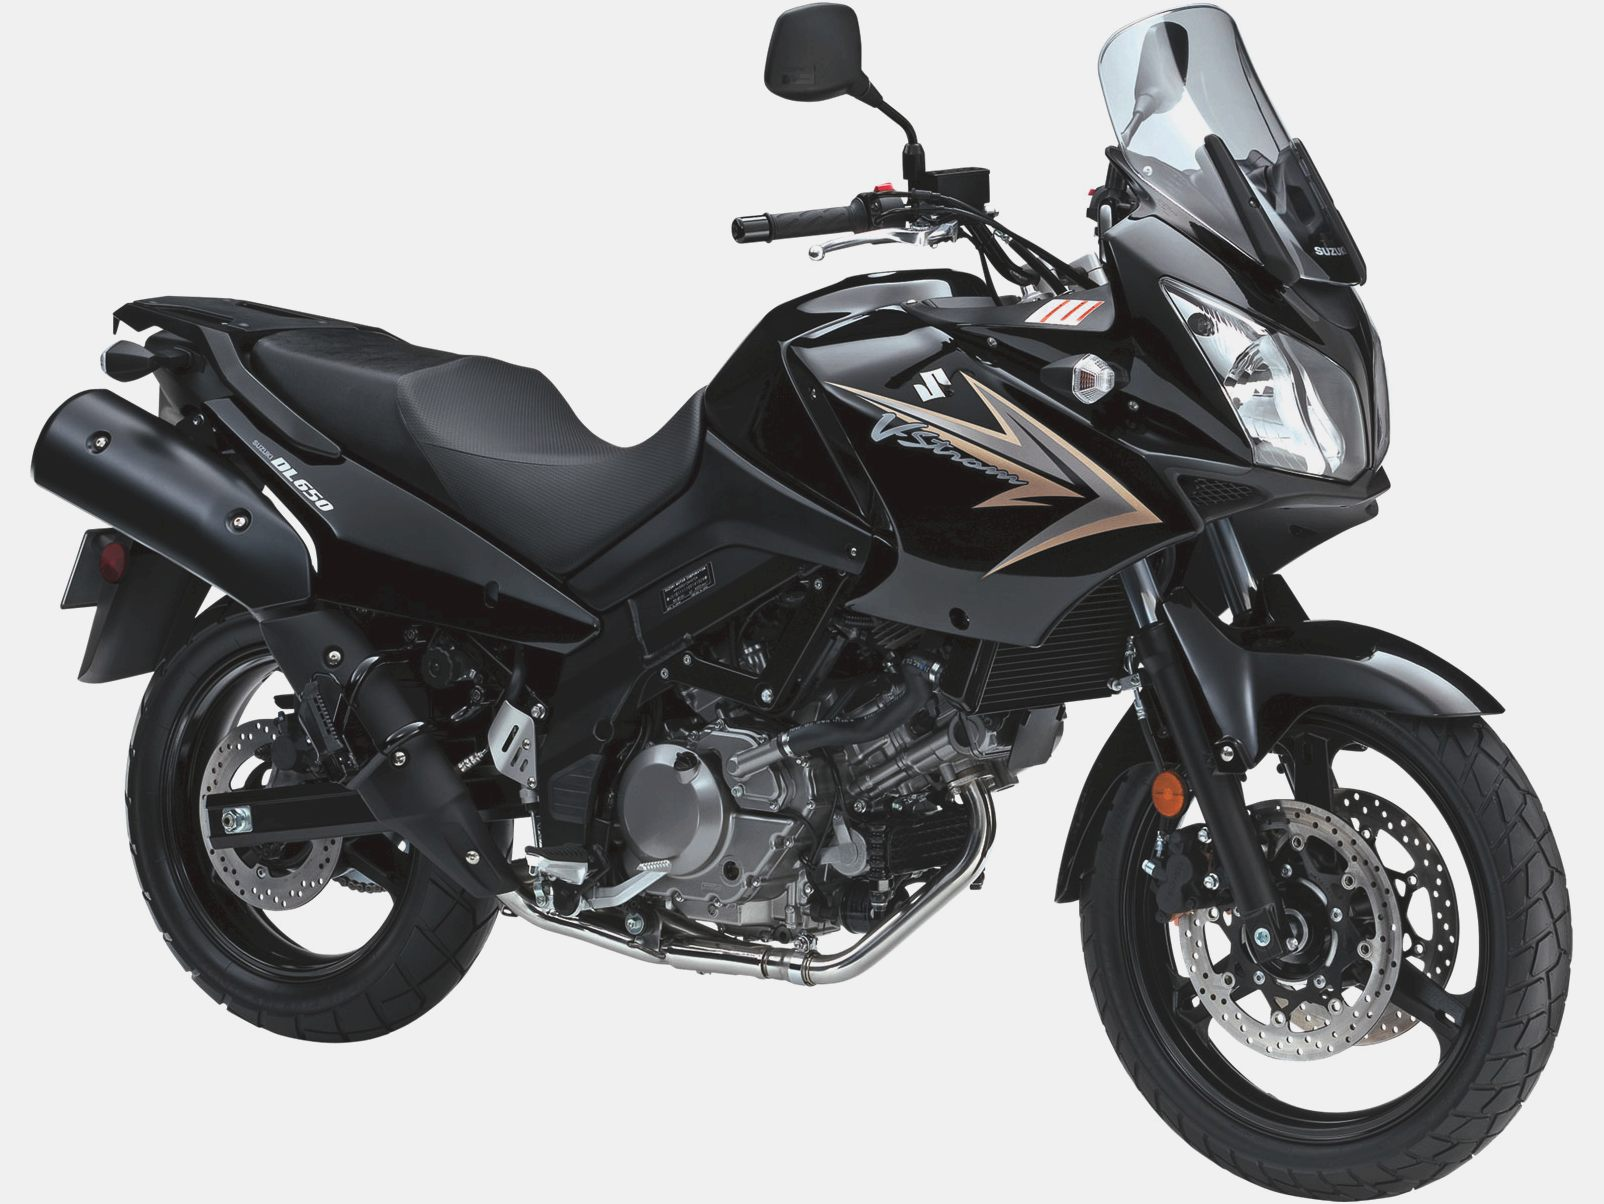 2009 Suzuki DL650 V-Strom Service Manual